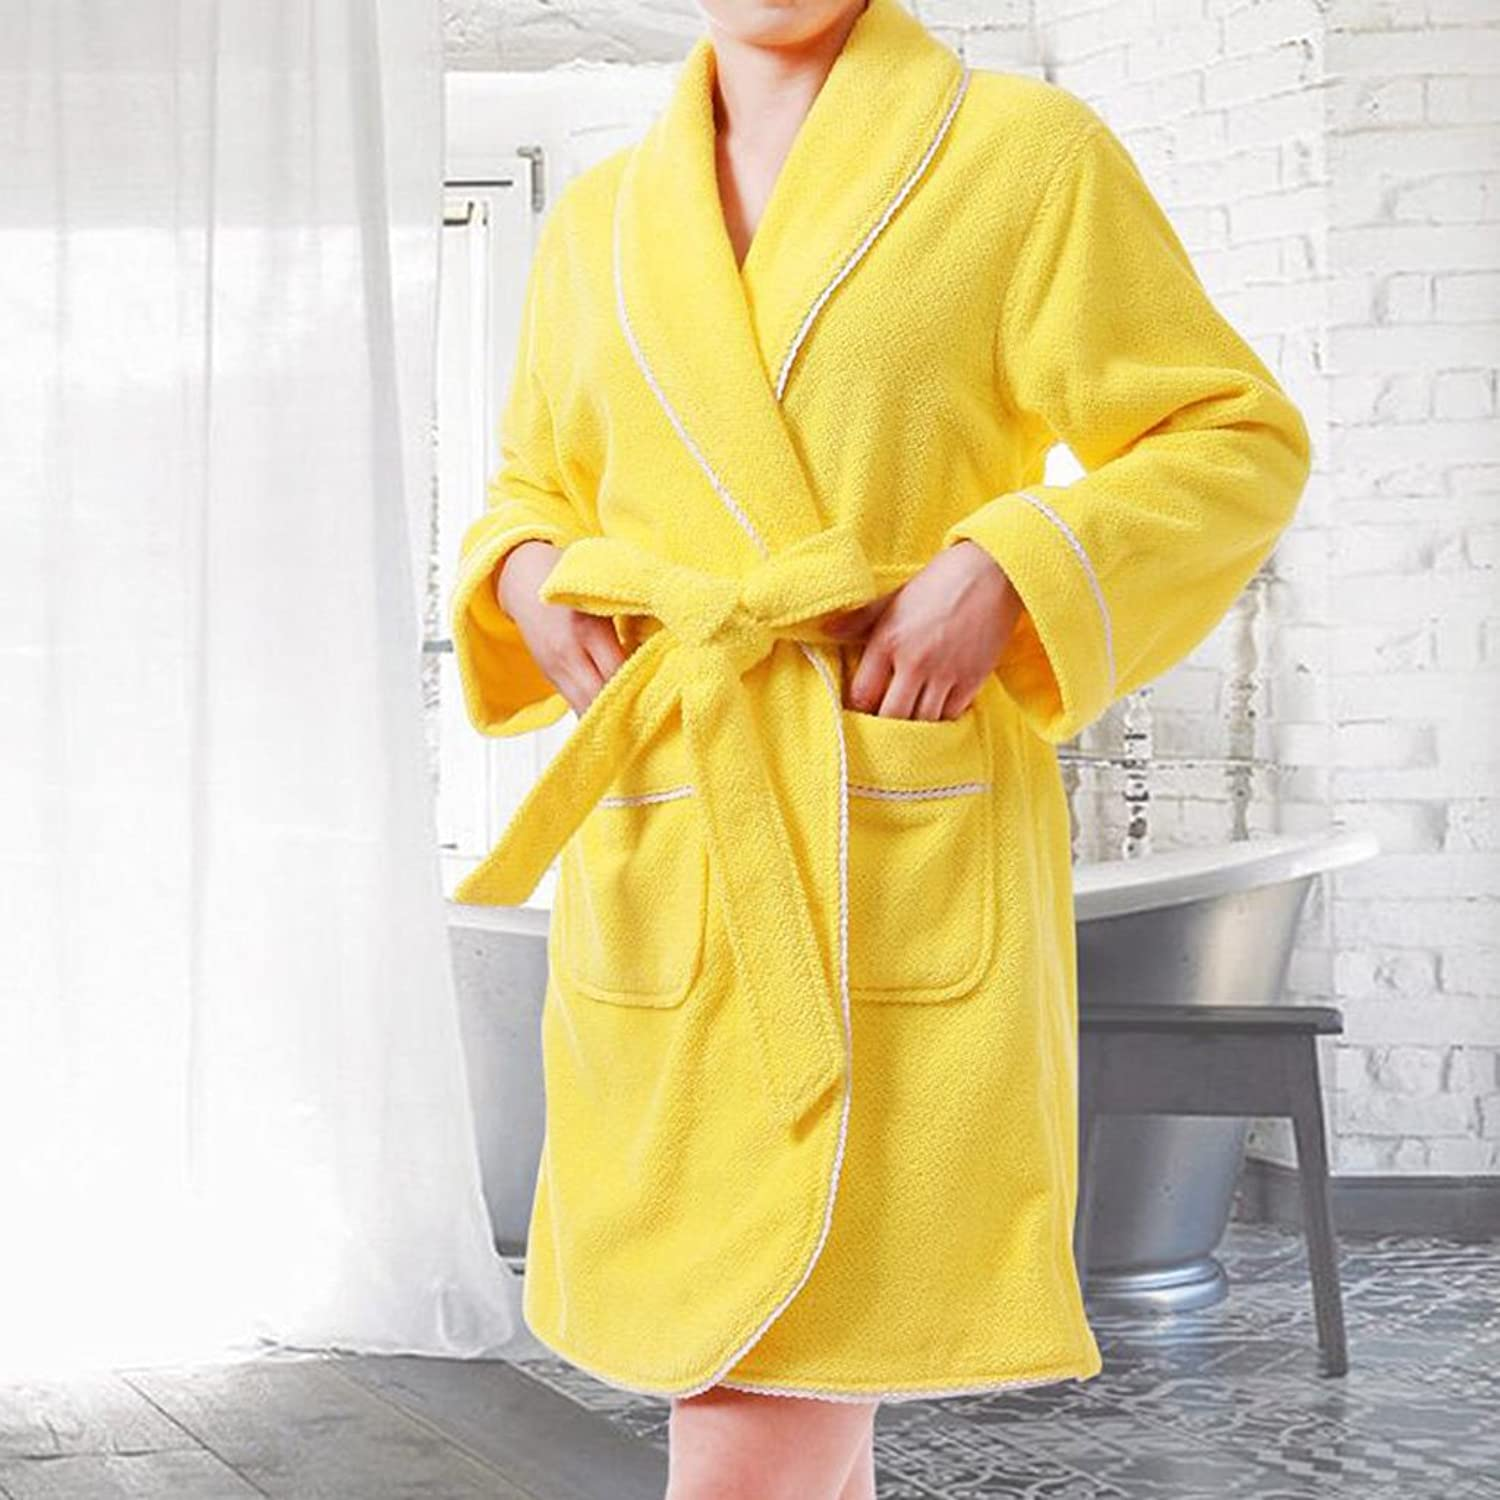 GJM Shop Cotton Ms Bathrobe Towel Material Nightgown Adult Water Absorption Home Clothes (color   Yellow)